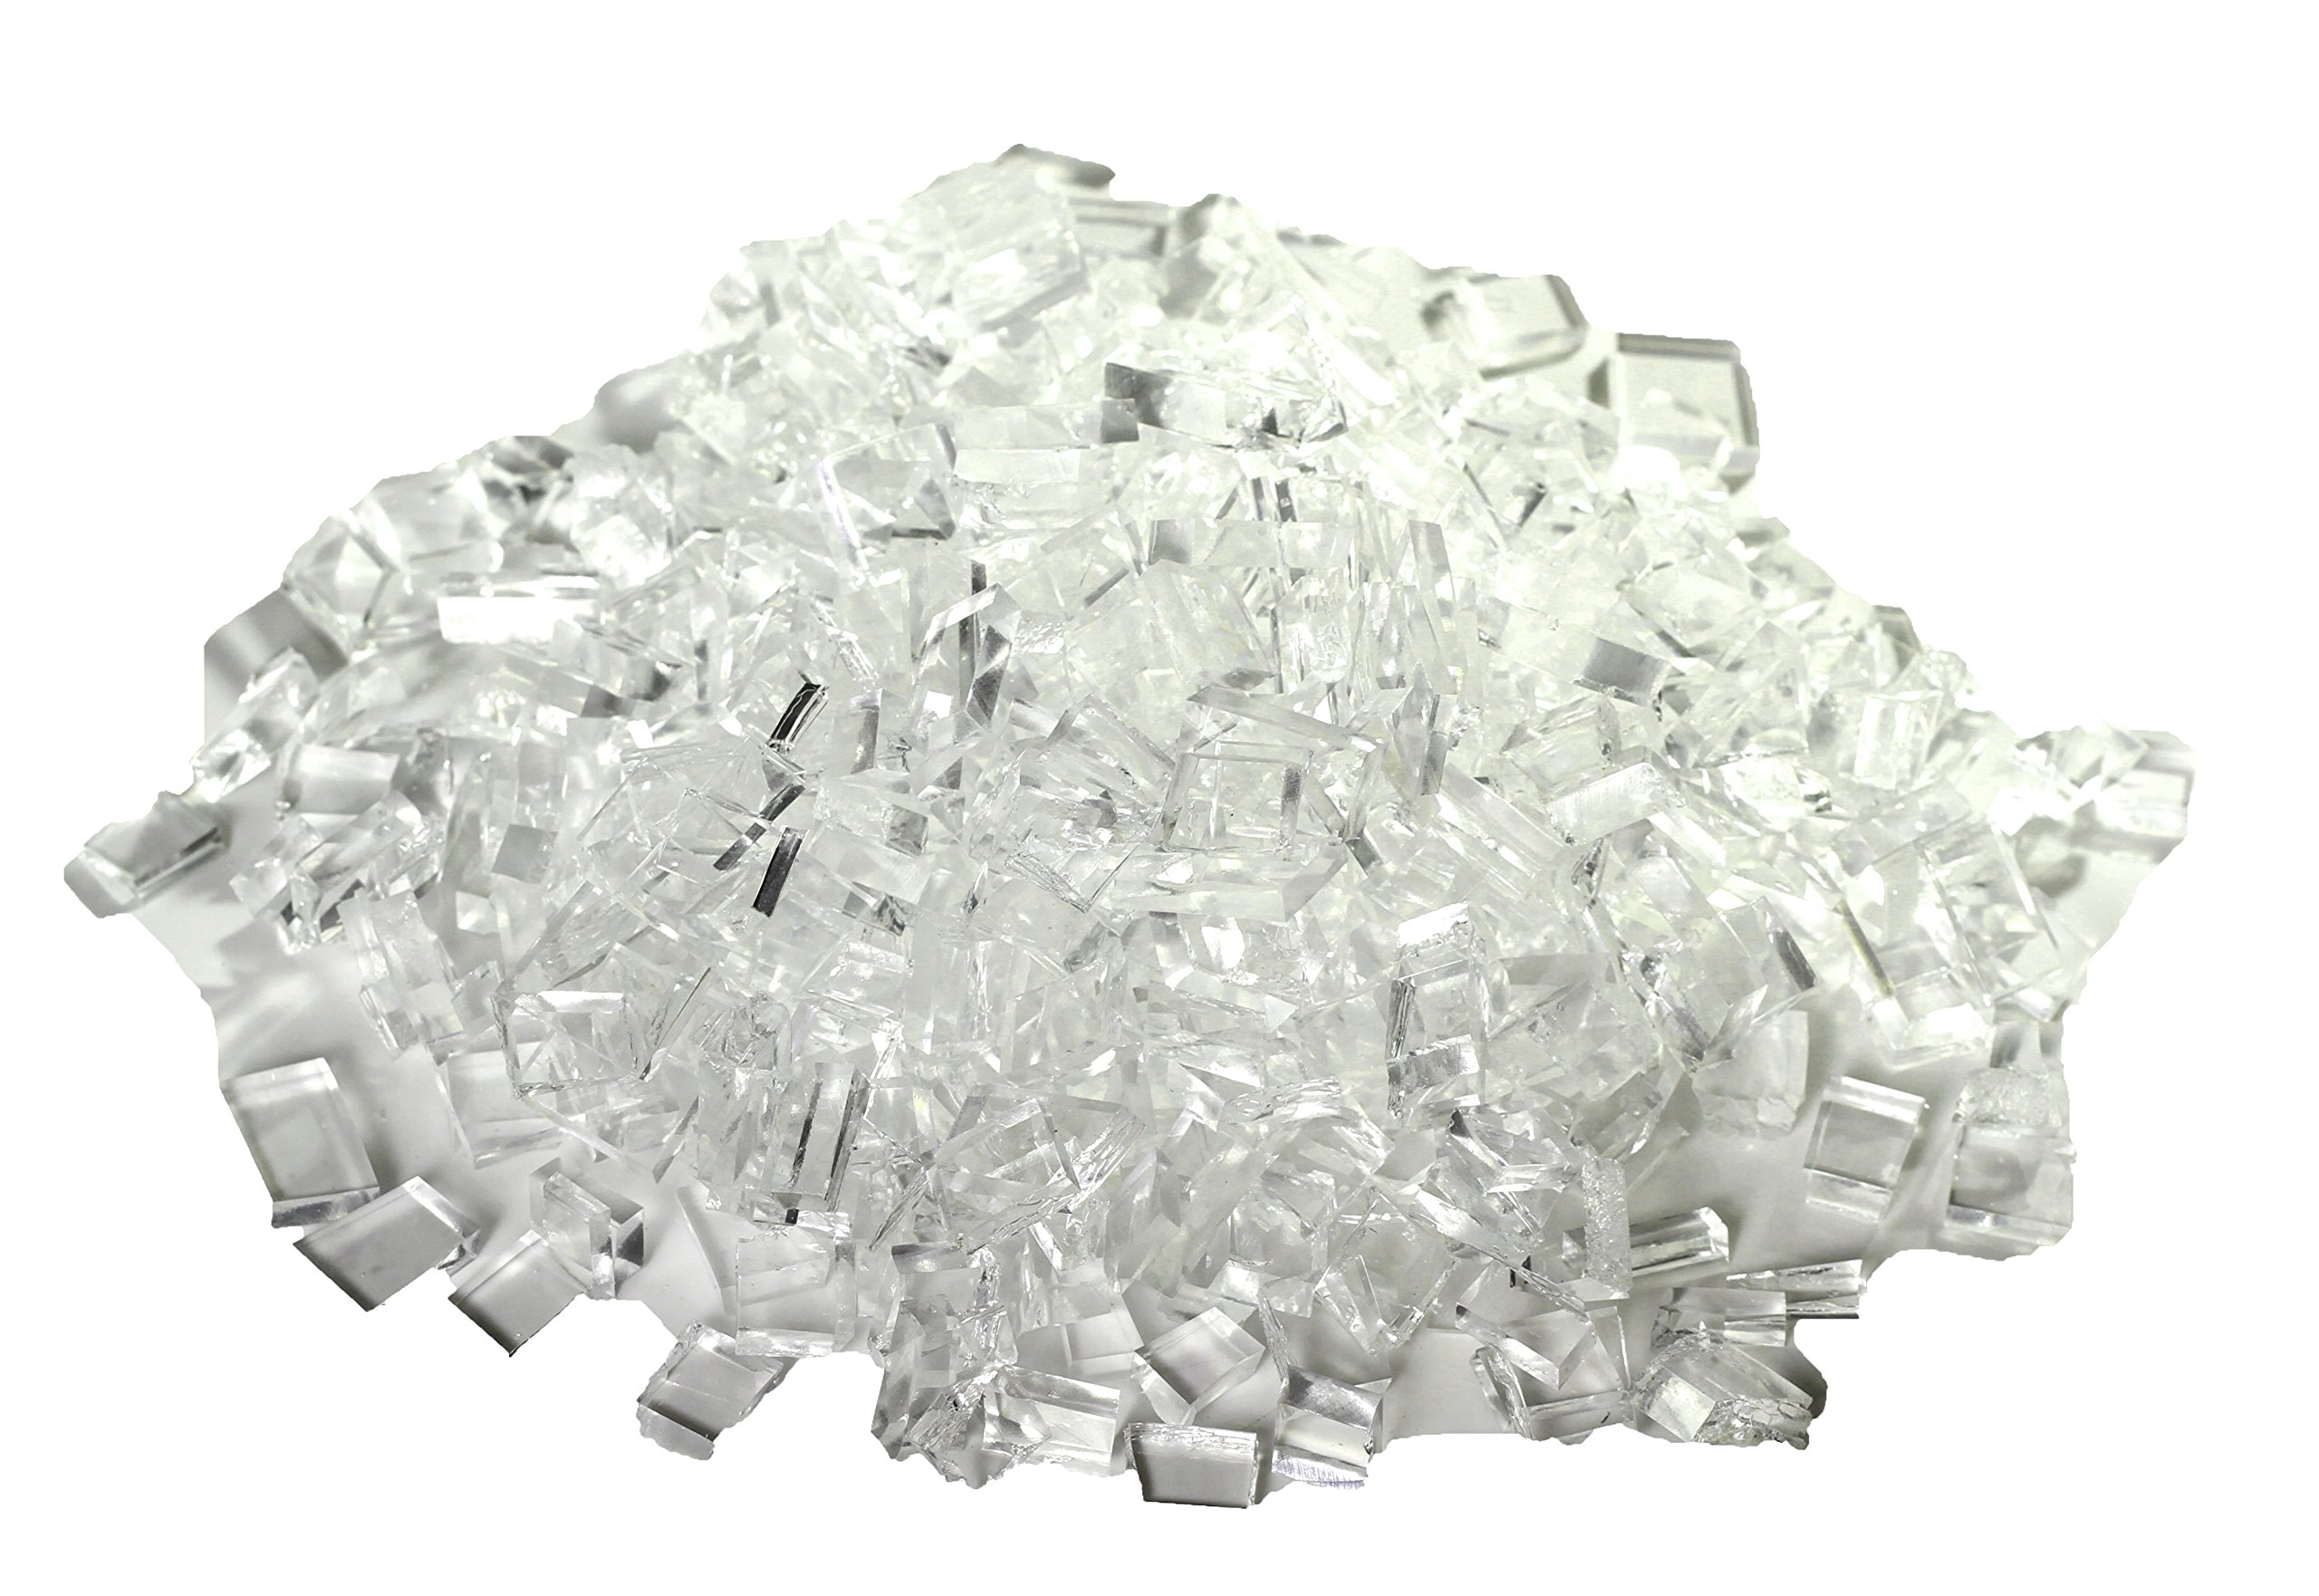 Rubber Glass Broken Safety Glass or Tempered Style Professional Movie or Theatre Props - 1lb Pack by NewRuleFX (Image #2)